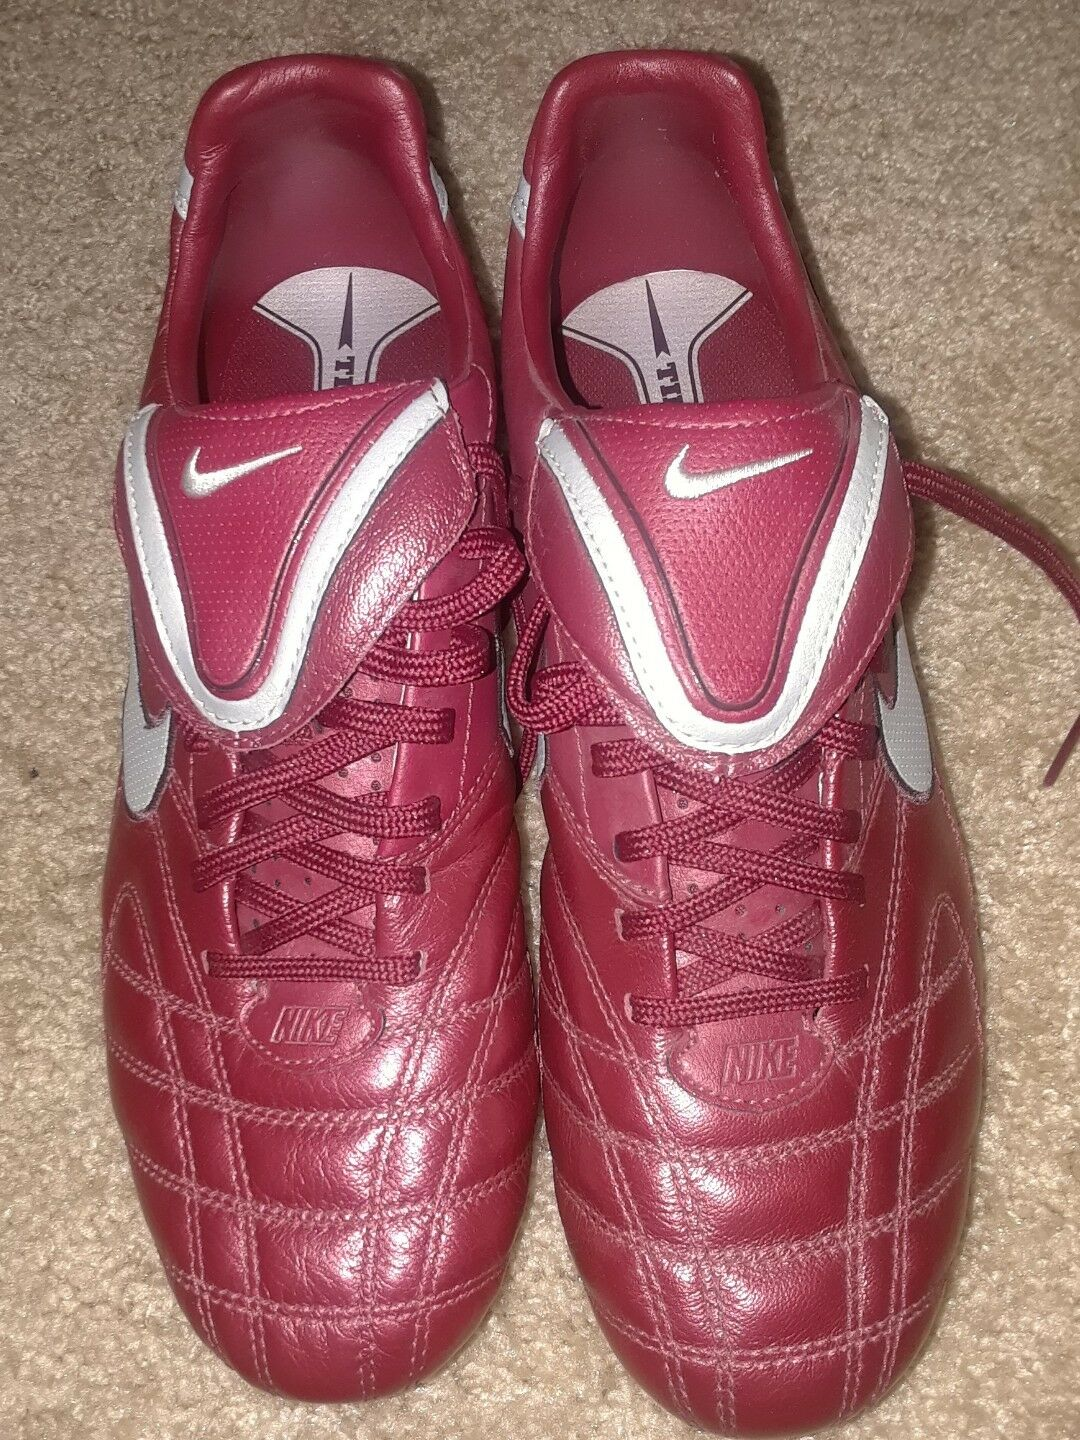 Men's Nike Cleats TIEMPO MYSTIC III FG 9 Burgundy